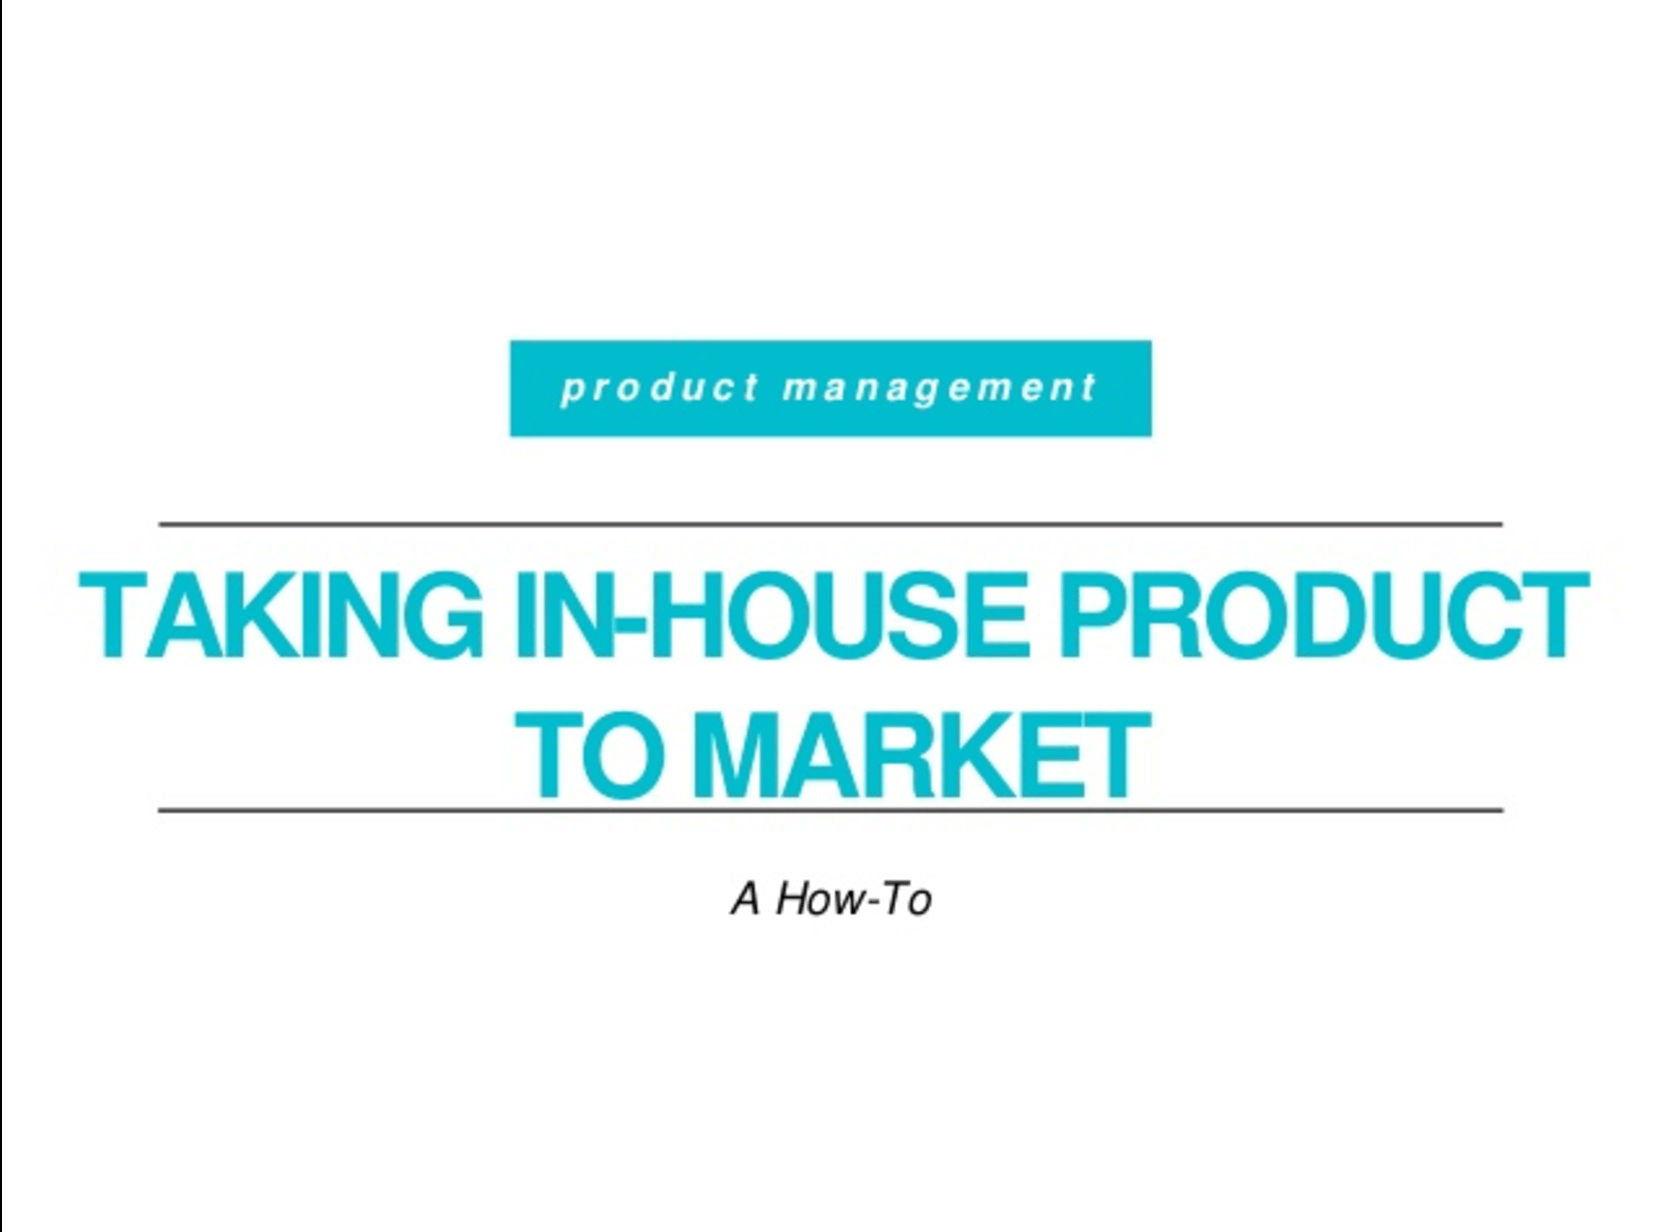 SpeakerDeck – Taking In-House Product to Market